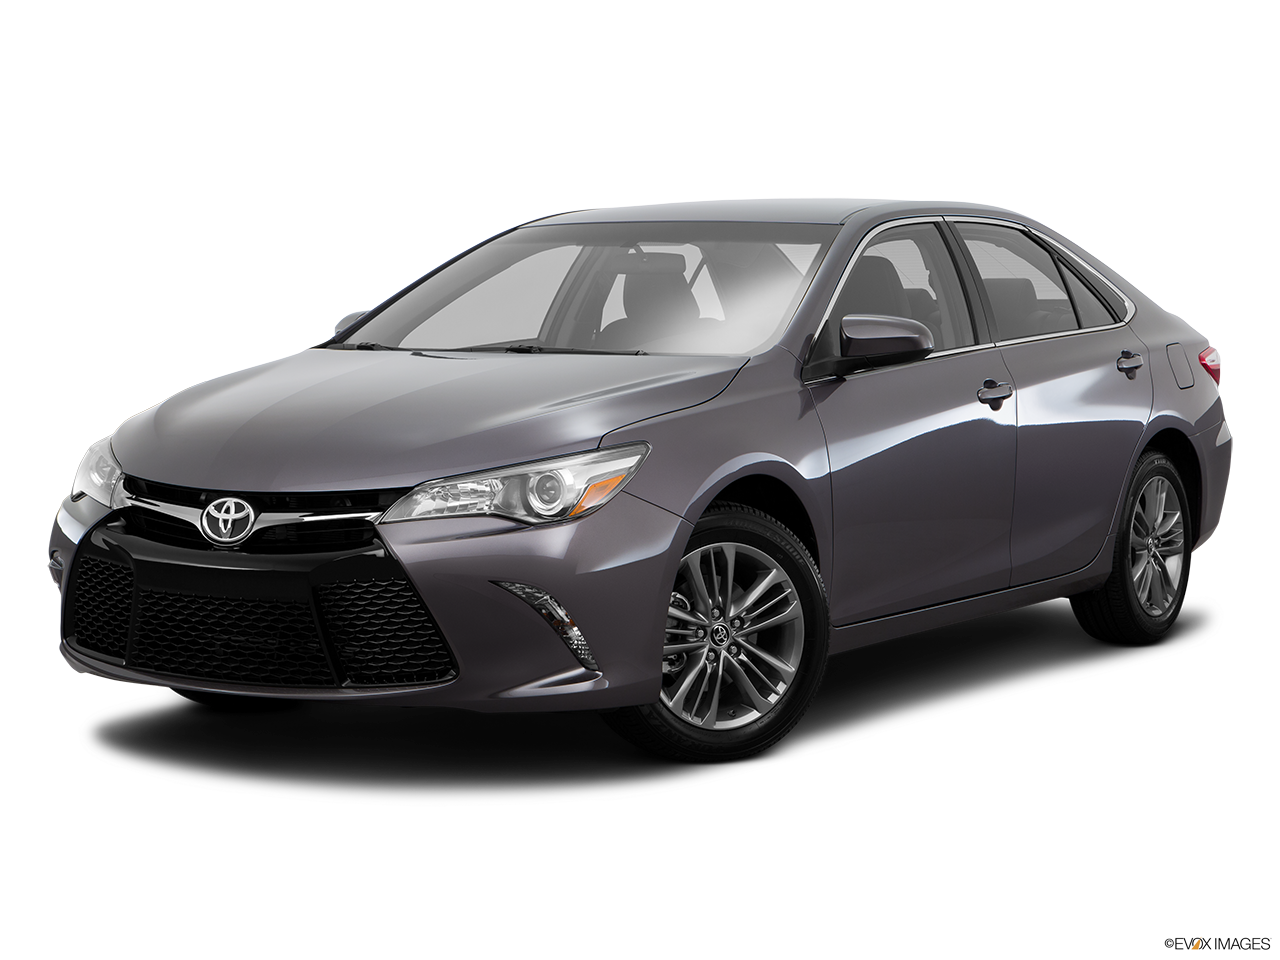 2016 toyota camry dealer in syracuse romano toyota. Black Bedroom Furniture Sets. Home Design Ideas